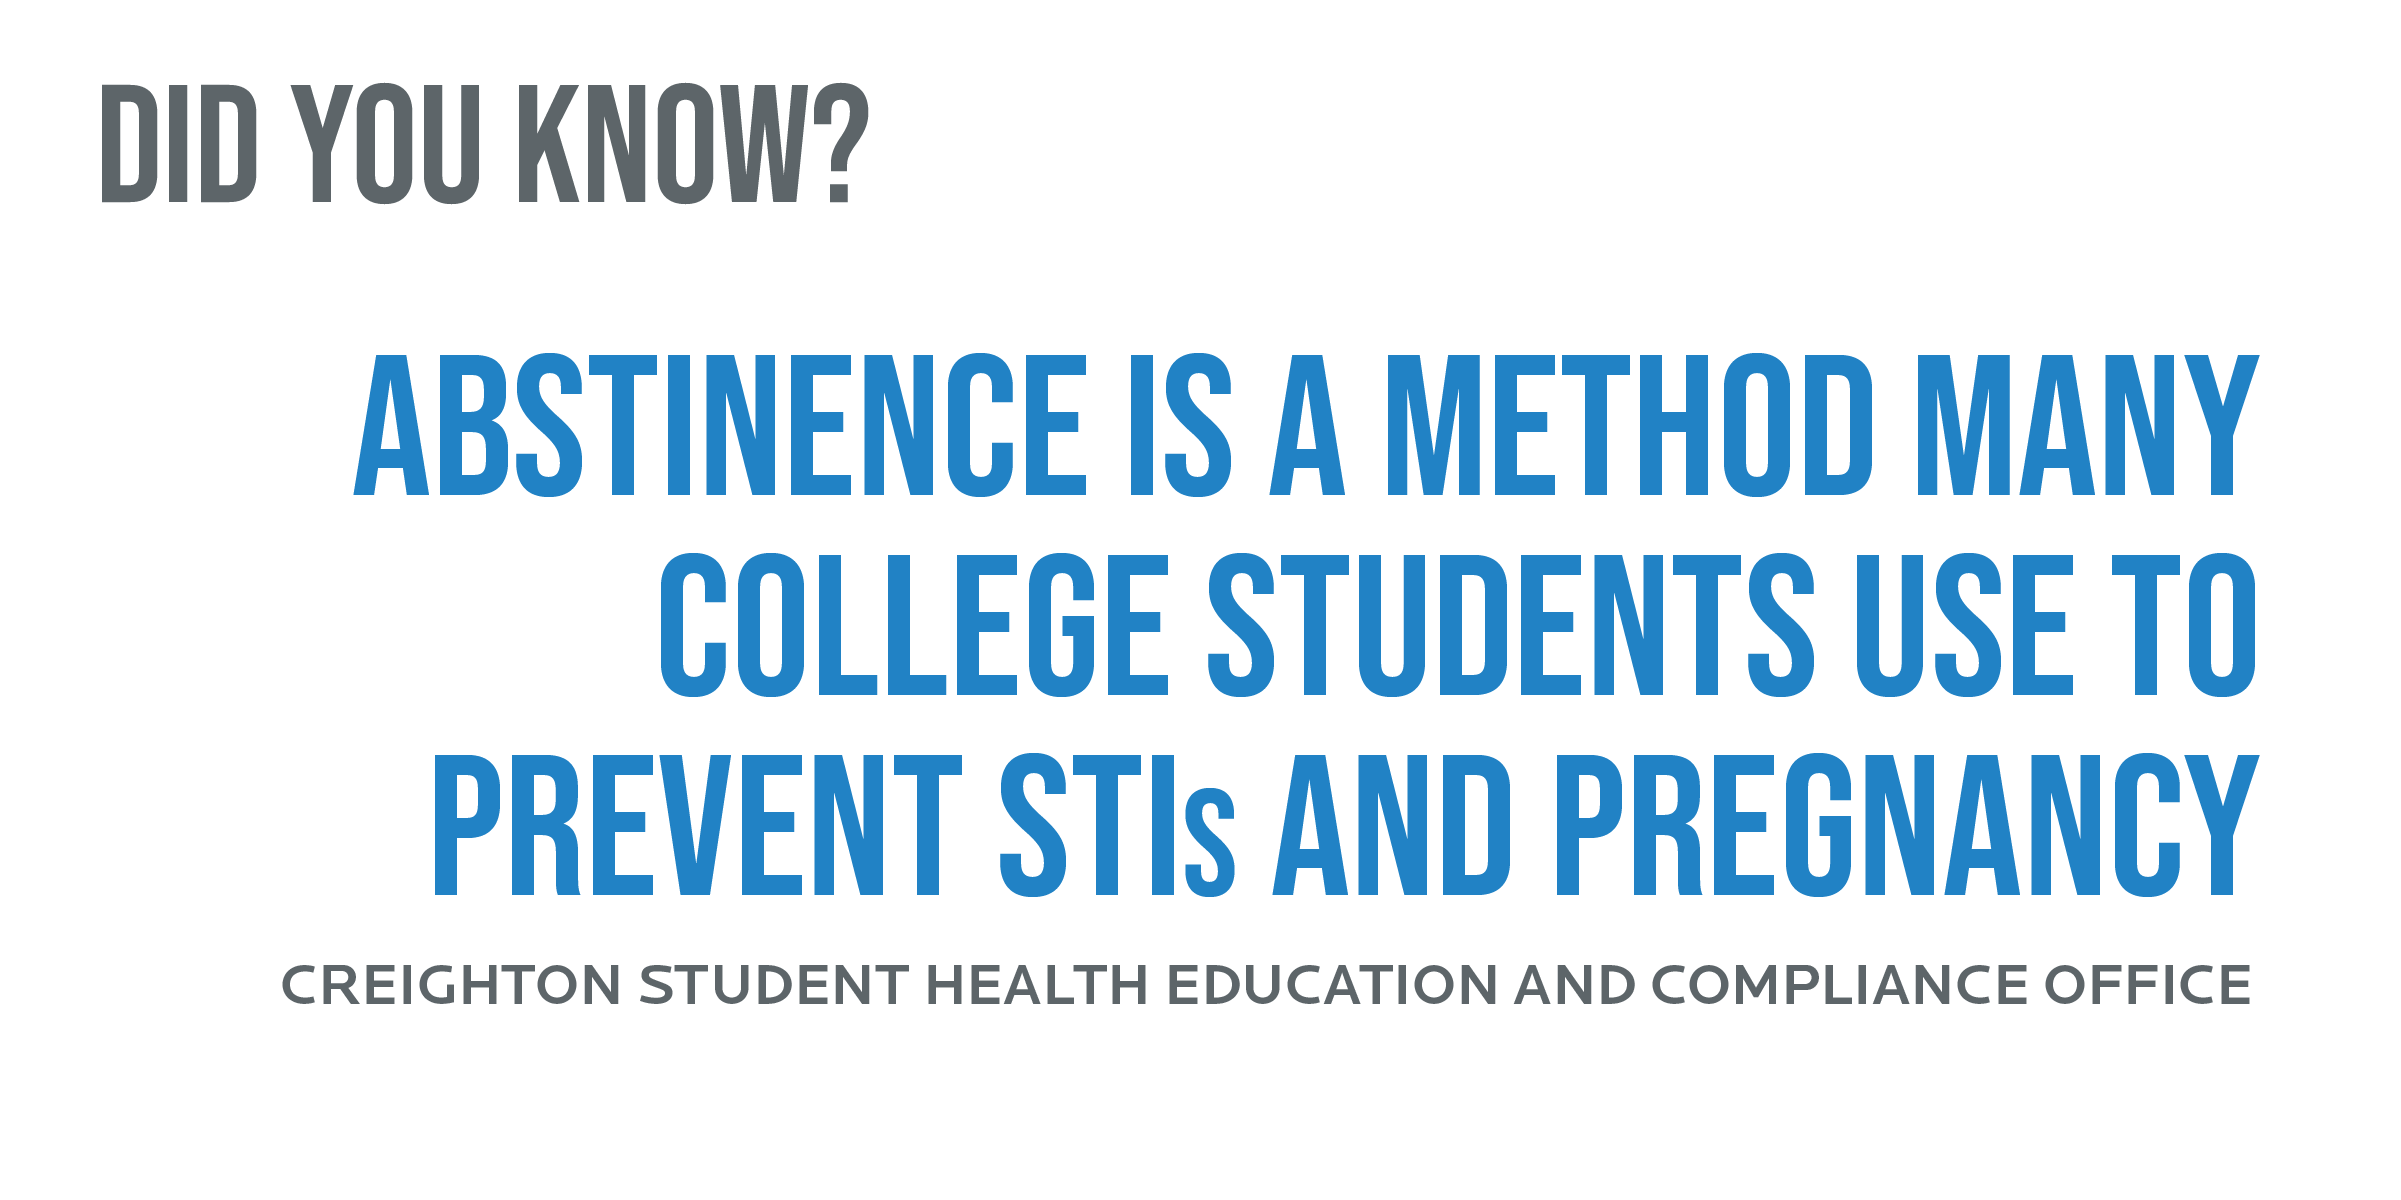 Abstinence is a method many college students use to prevent STIs and pregnancy